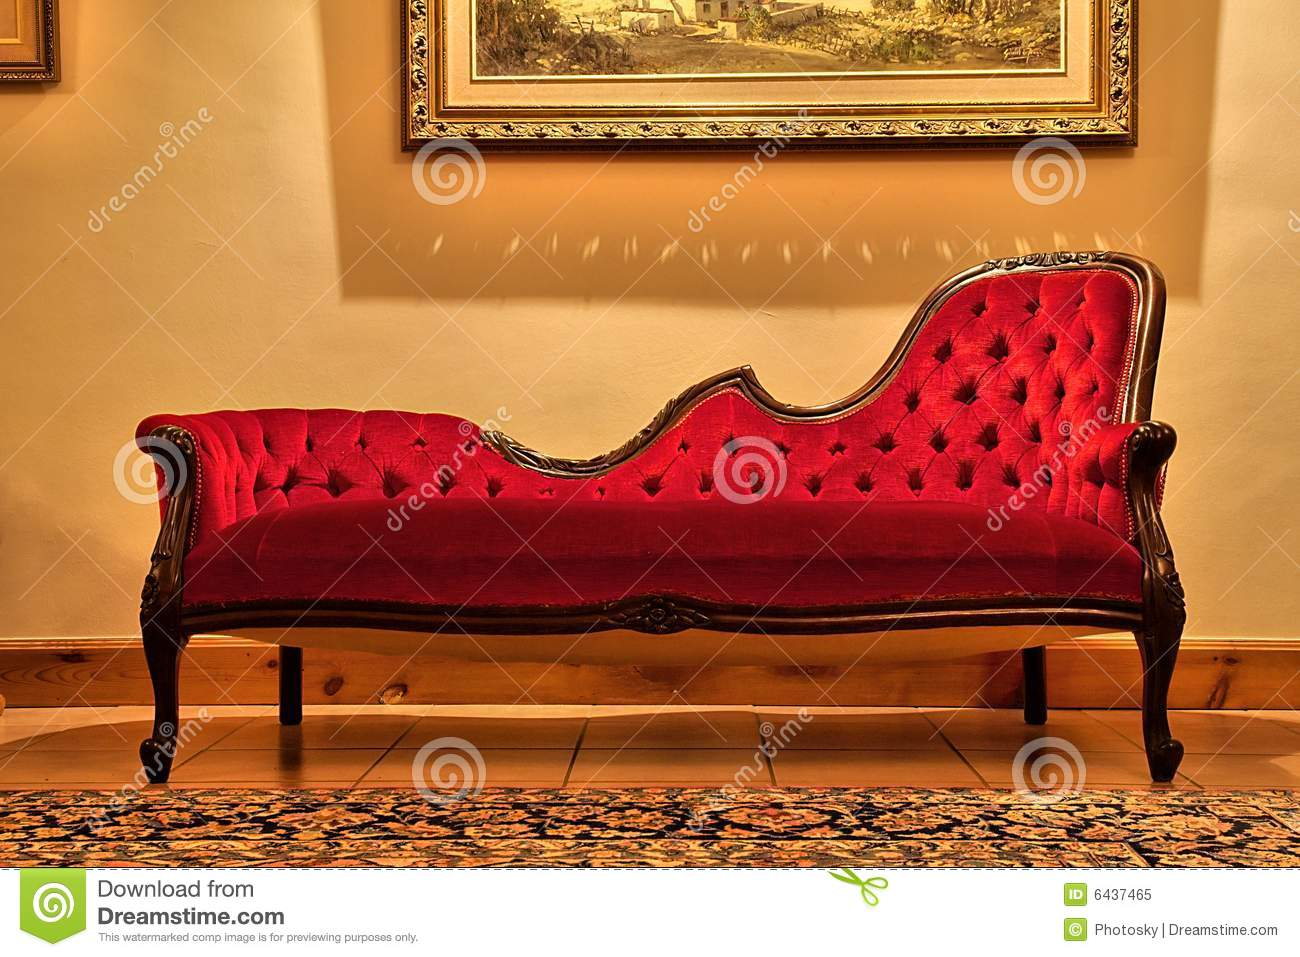 Expensive Red Sofa Under Painting Royalty Free Stock Photo